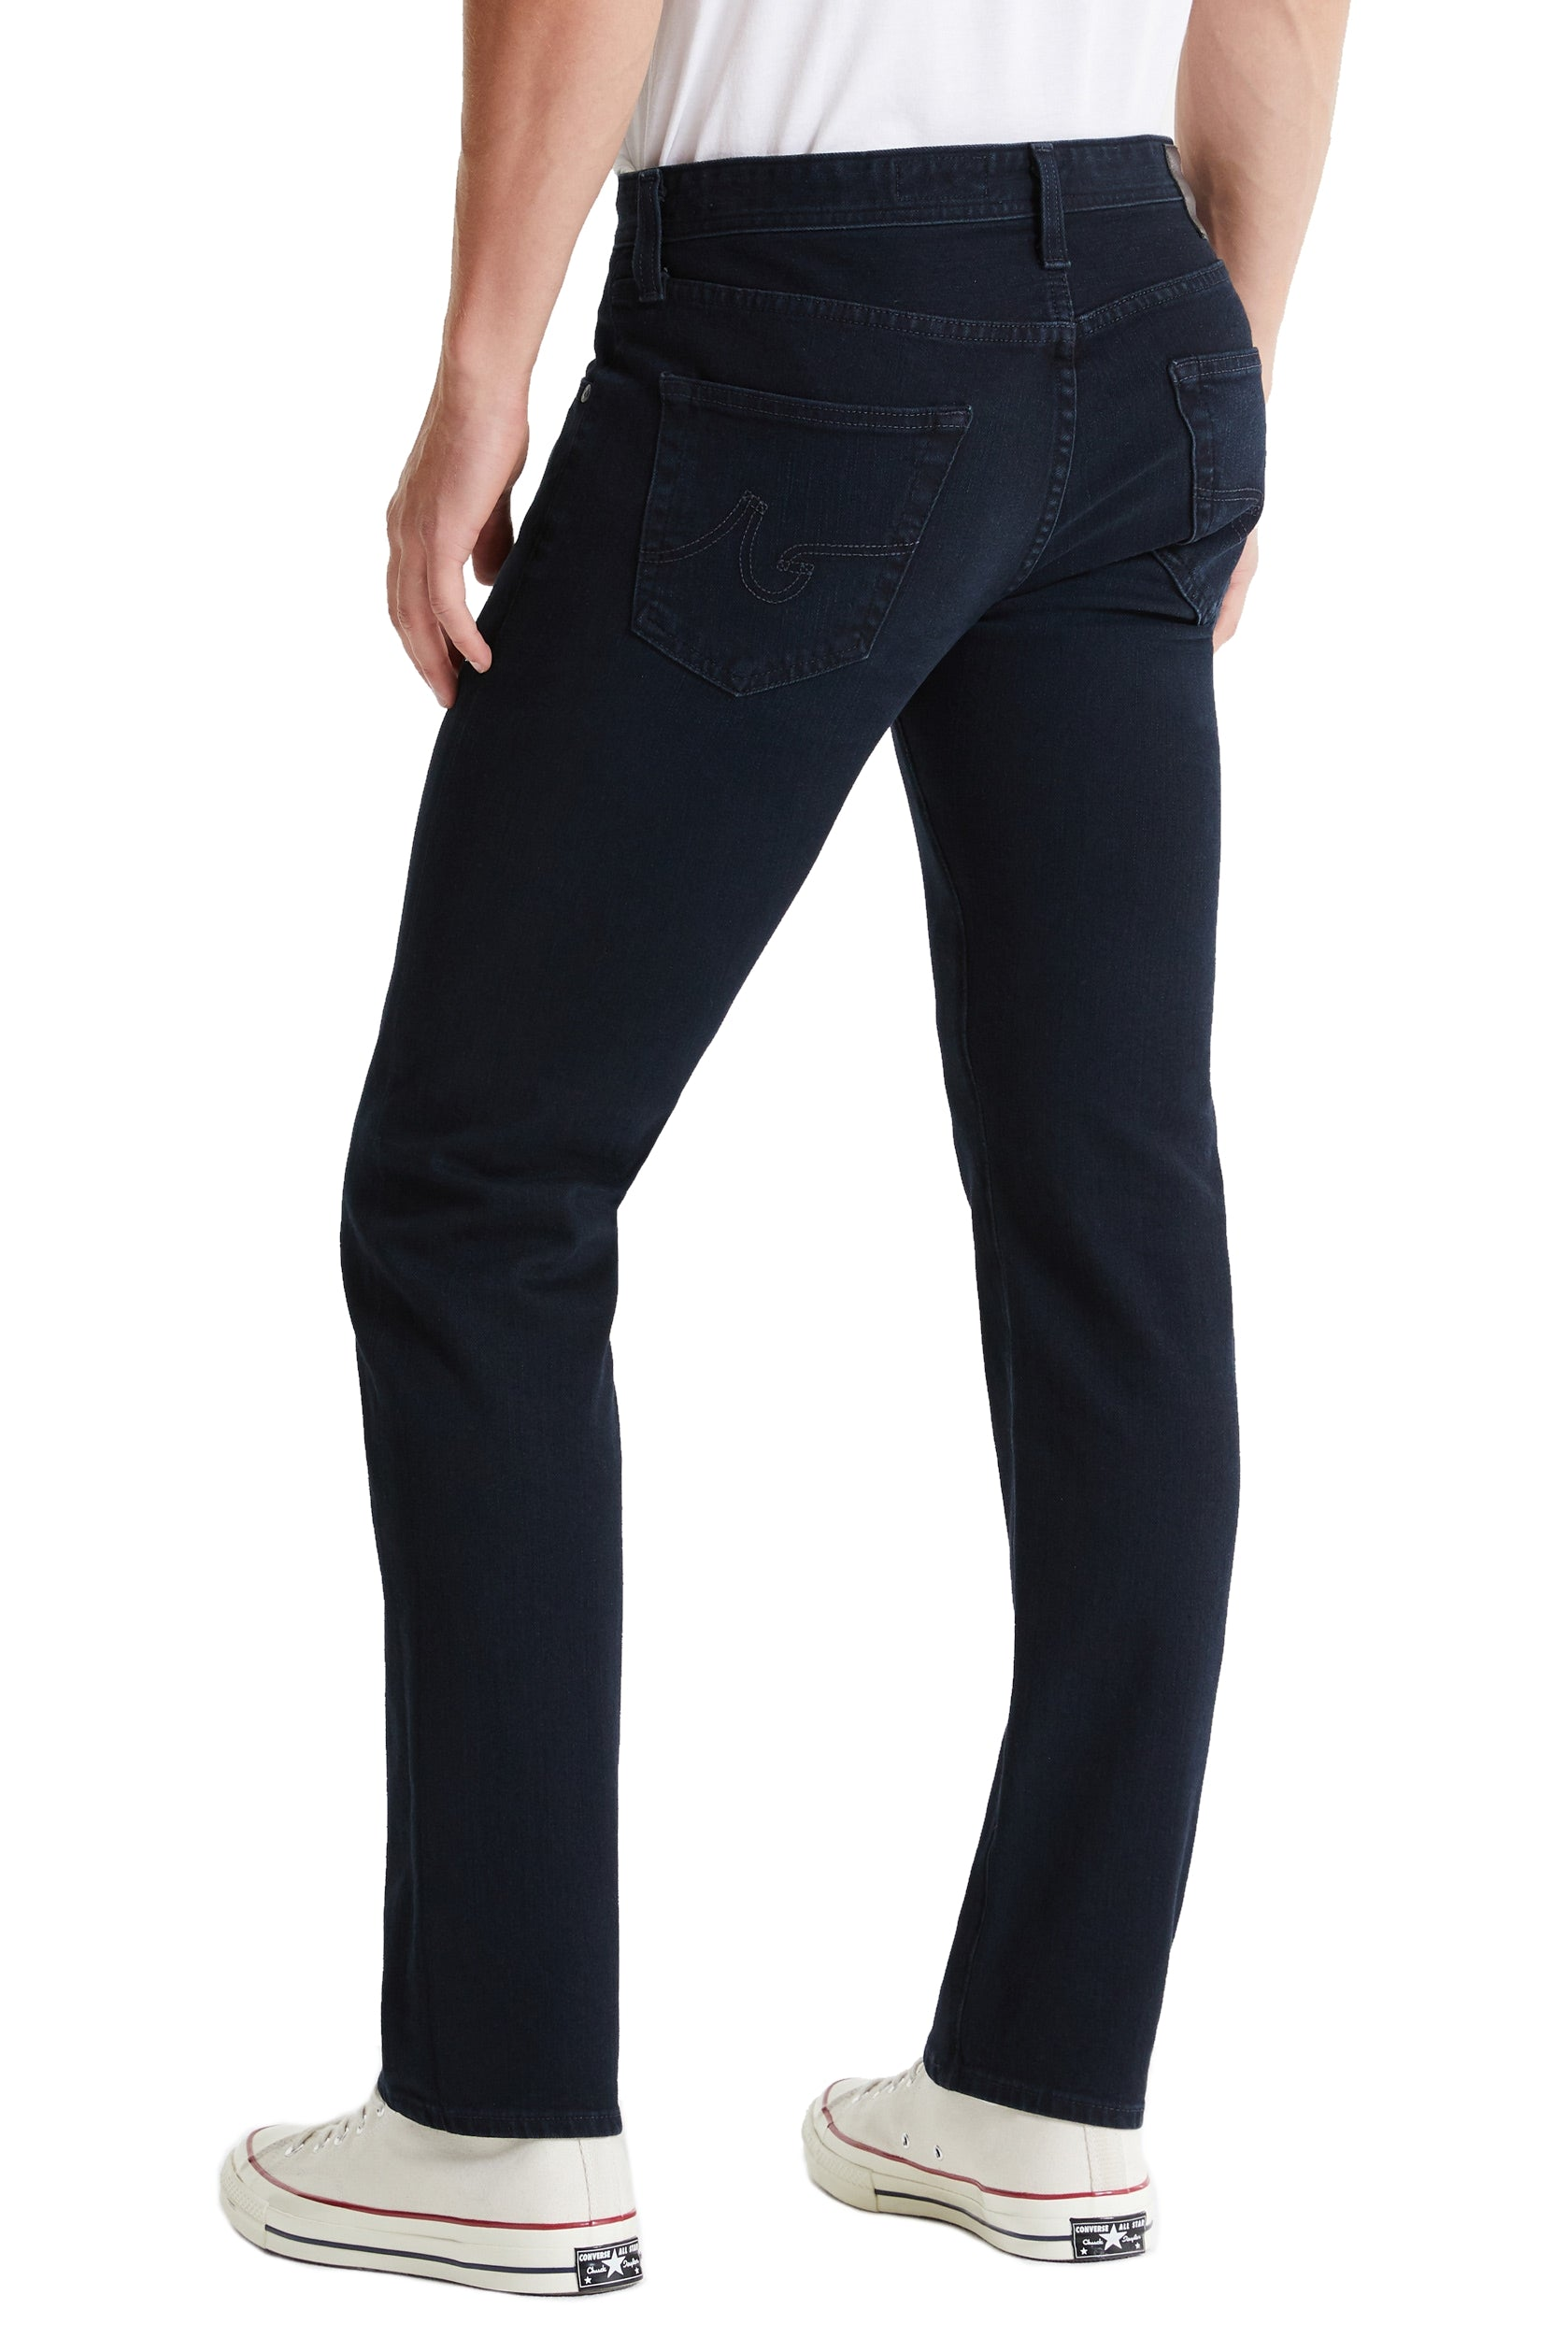 AG Adriano Goldschmied Graduate All Direction Stretch Denim Jeans